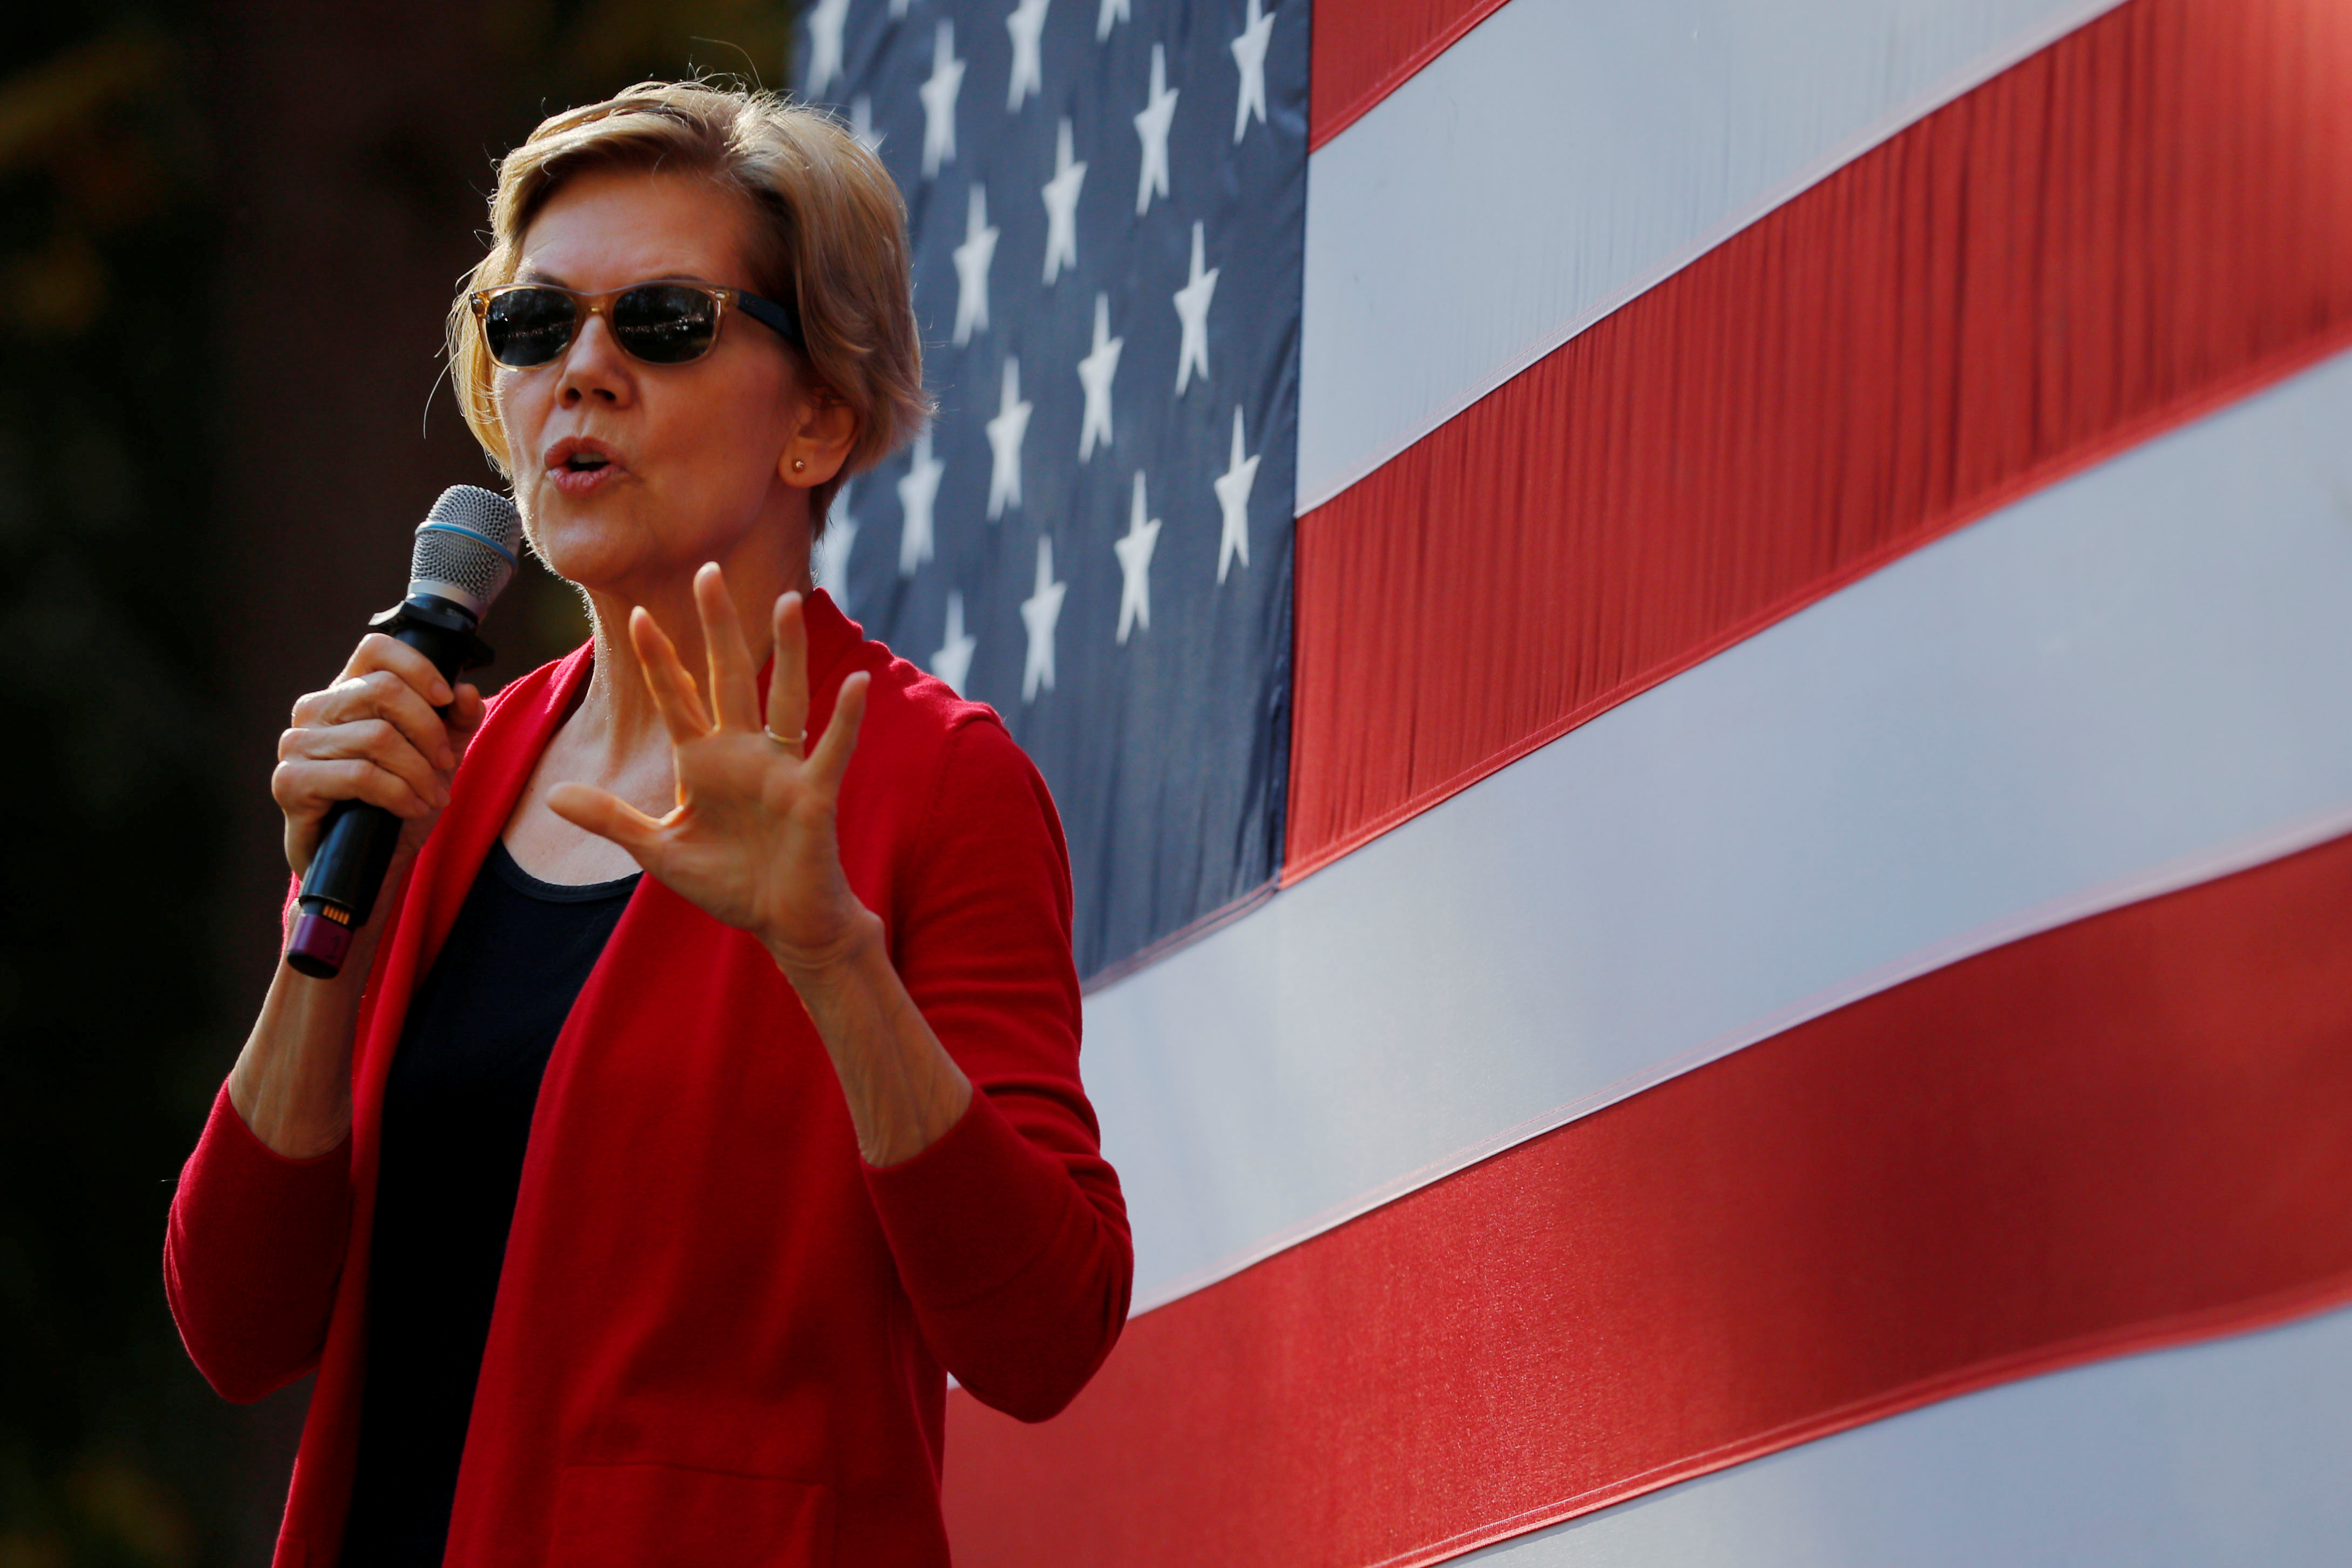 FILE PHOTO: Democratic 2020 U.S. presidential candidate and U.S. Senator Elizabeth Warren (D-MA) speaks at a campaign town hall meeting at Dartmouth College in Hanover, New Hampshire, U.S., October 24, 2019. REUTERS/Brian Snyder/File Photo